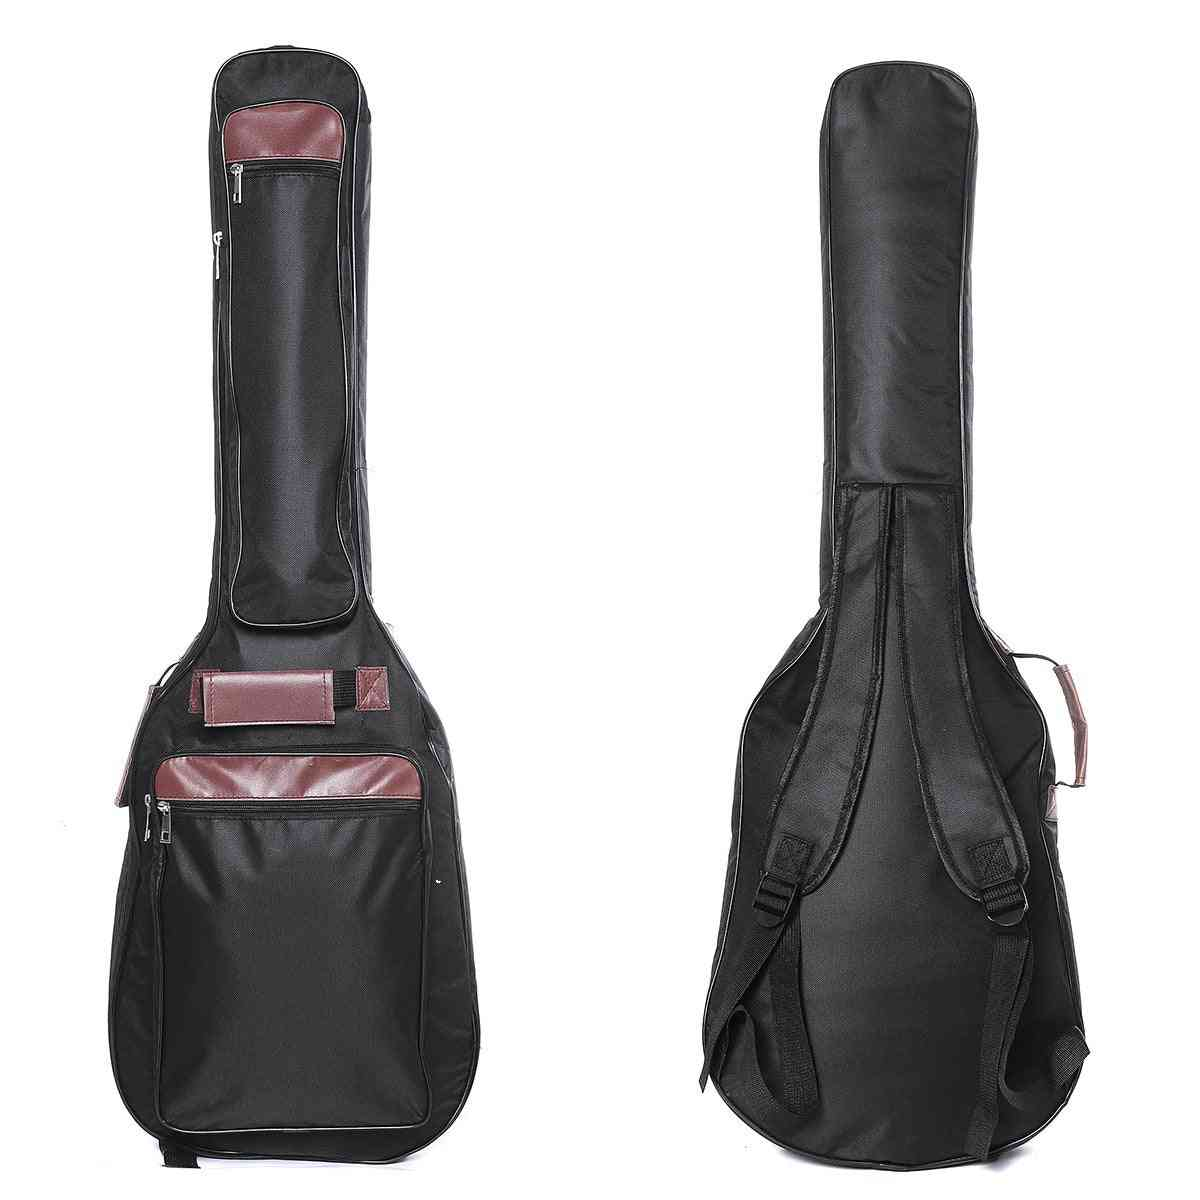 Electric Guitar/bass Bag With Double-shoulder Straps